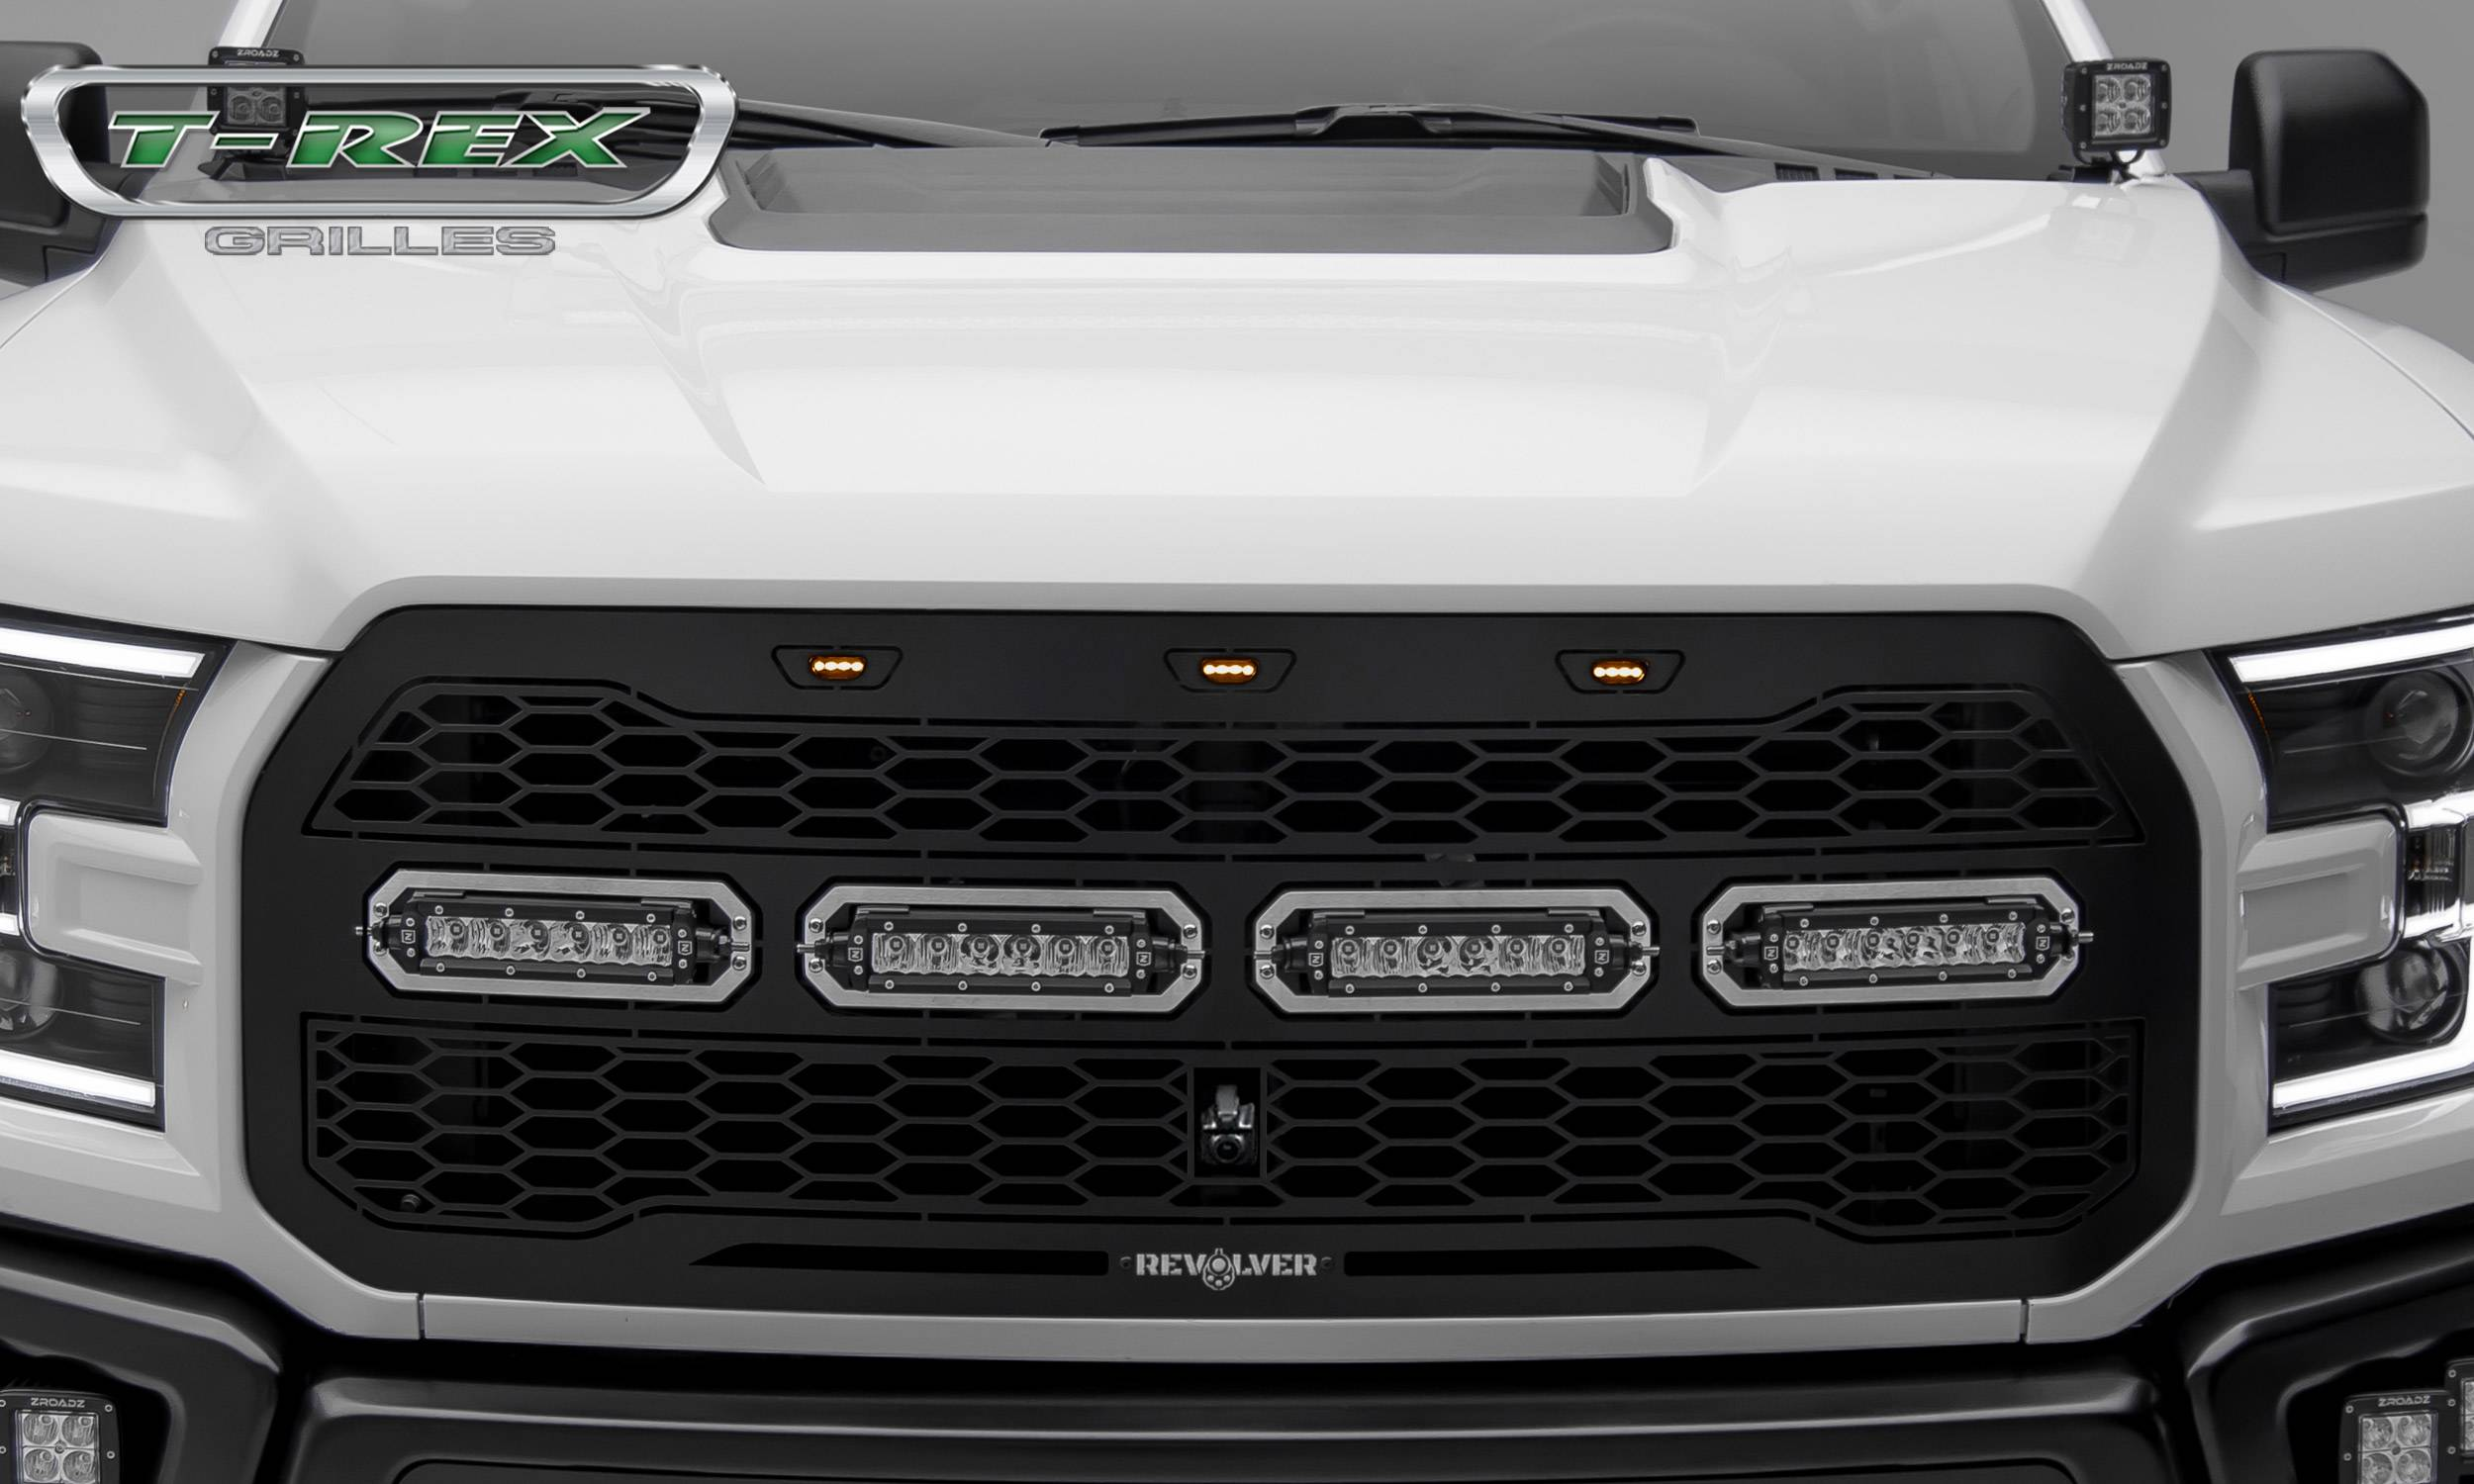 2017-2019 F-150 Raptor SVT Revolver Grille, Black, 1 Pc, Replacement,  Chrome Studs, Incl  (4) 6